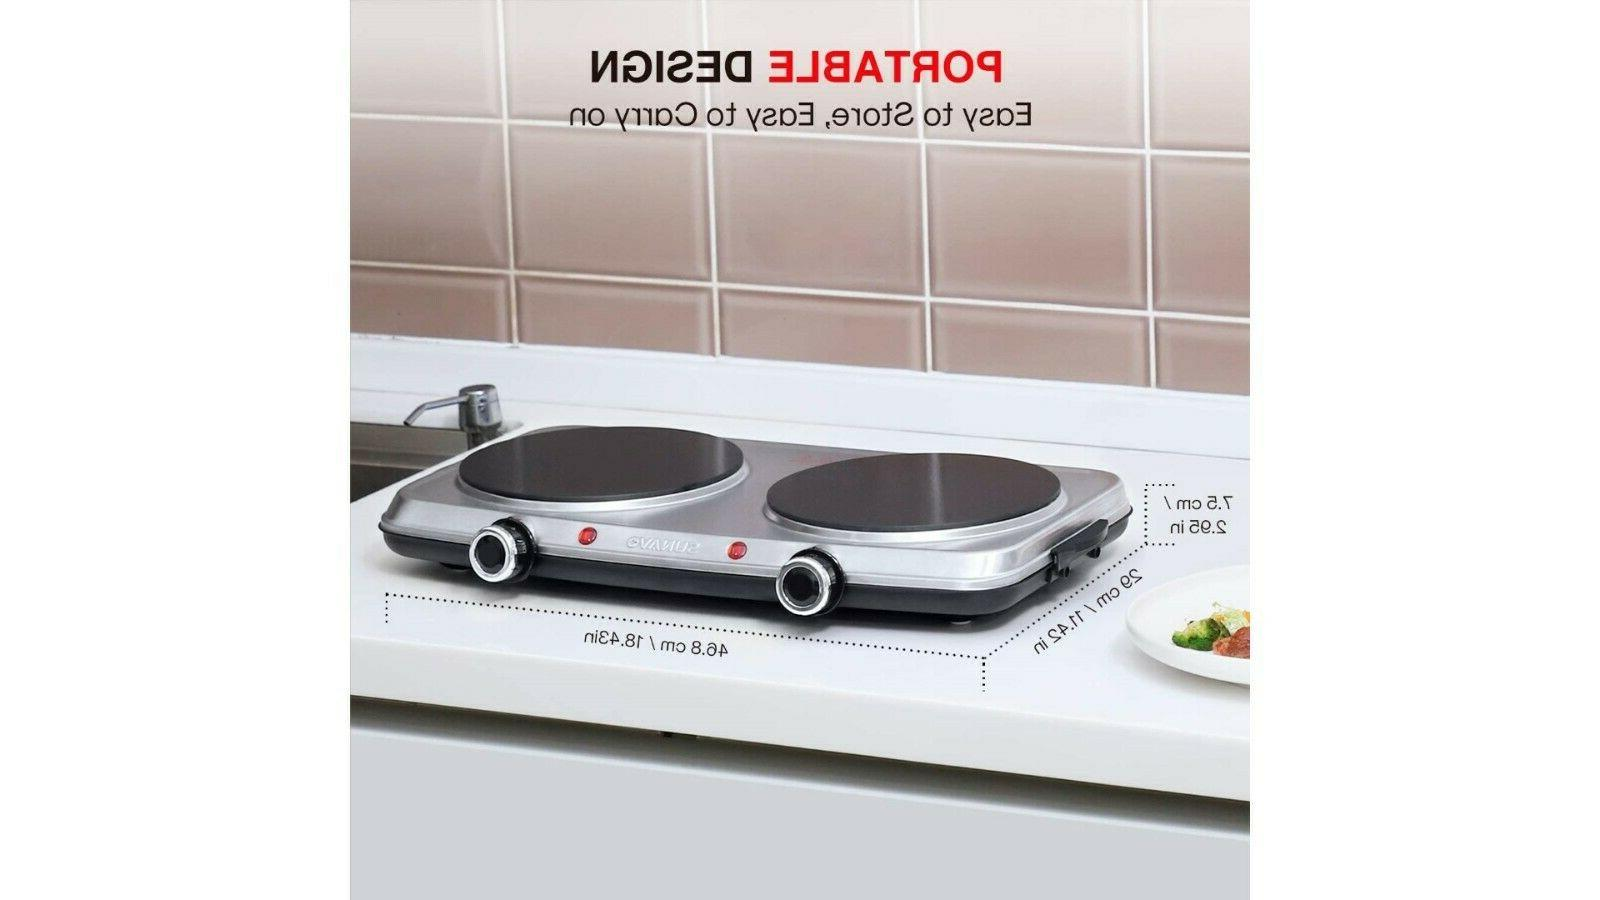 Hot Plates 1800W Electric Double Burner with Handles, 6 Power Level